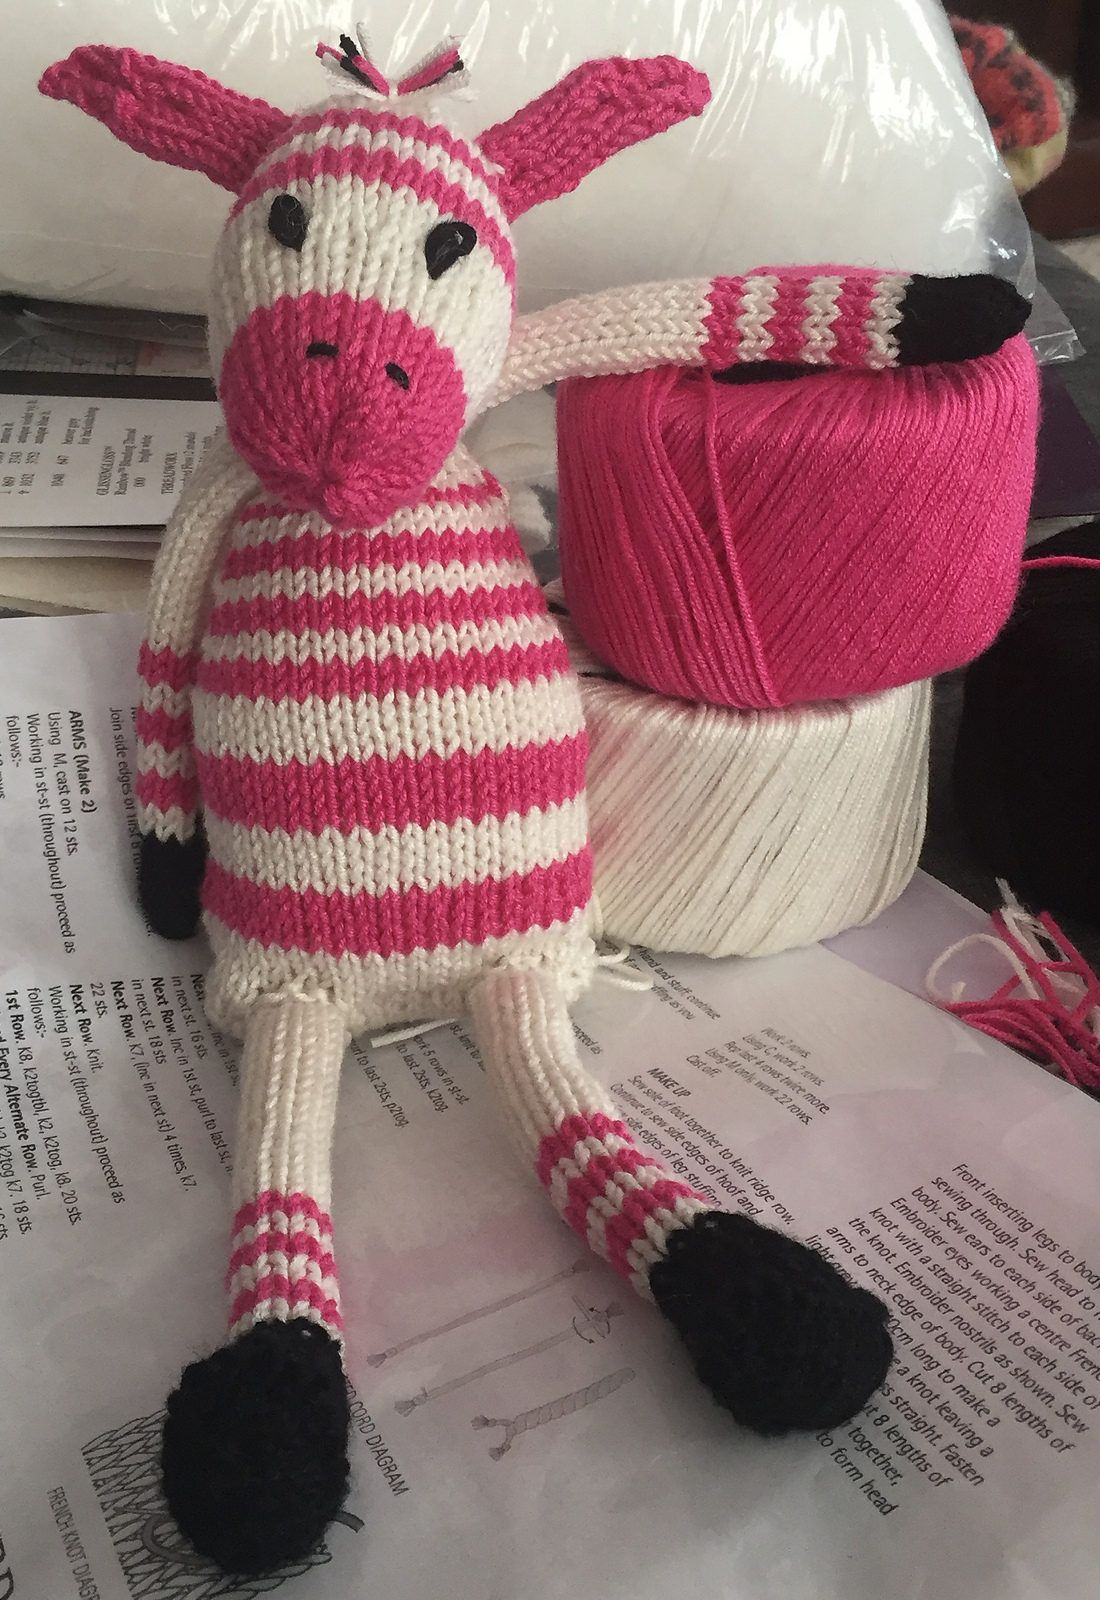 Horse and Other Equine Knitting Patterns | Knitting patterns ...